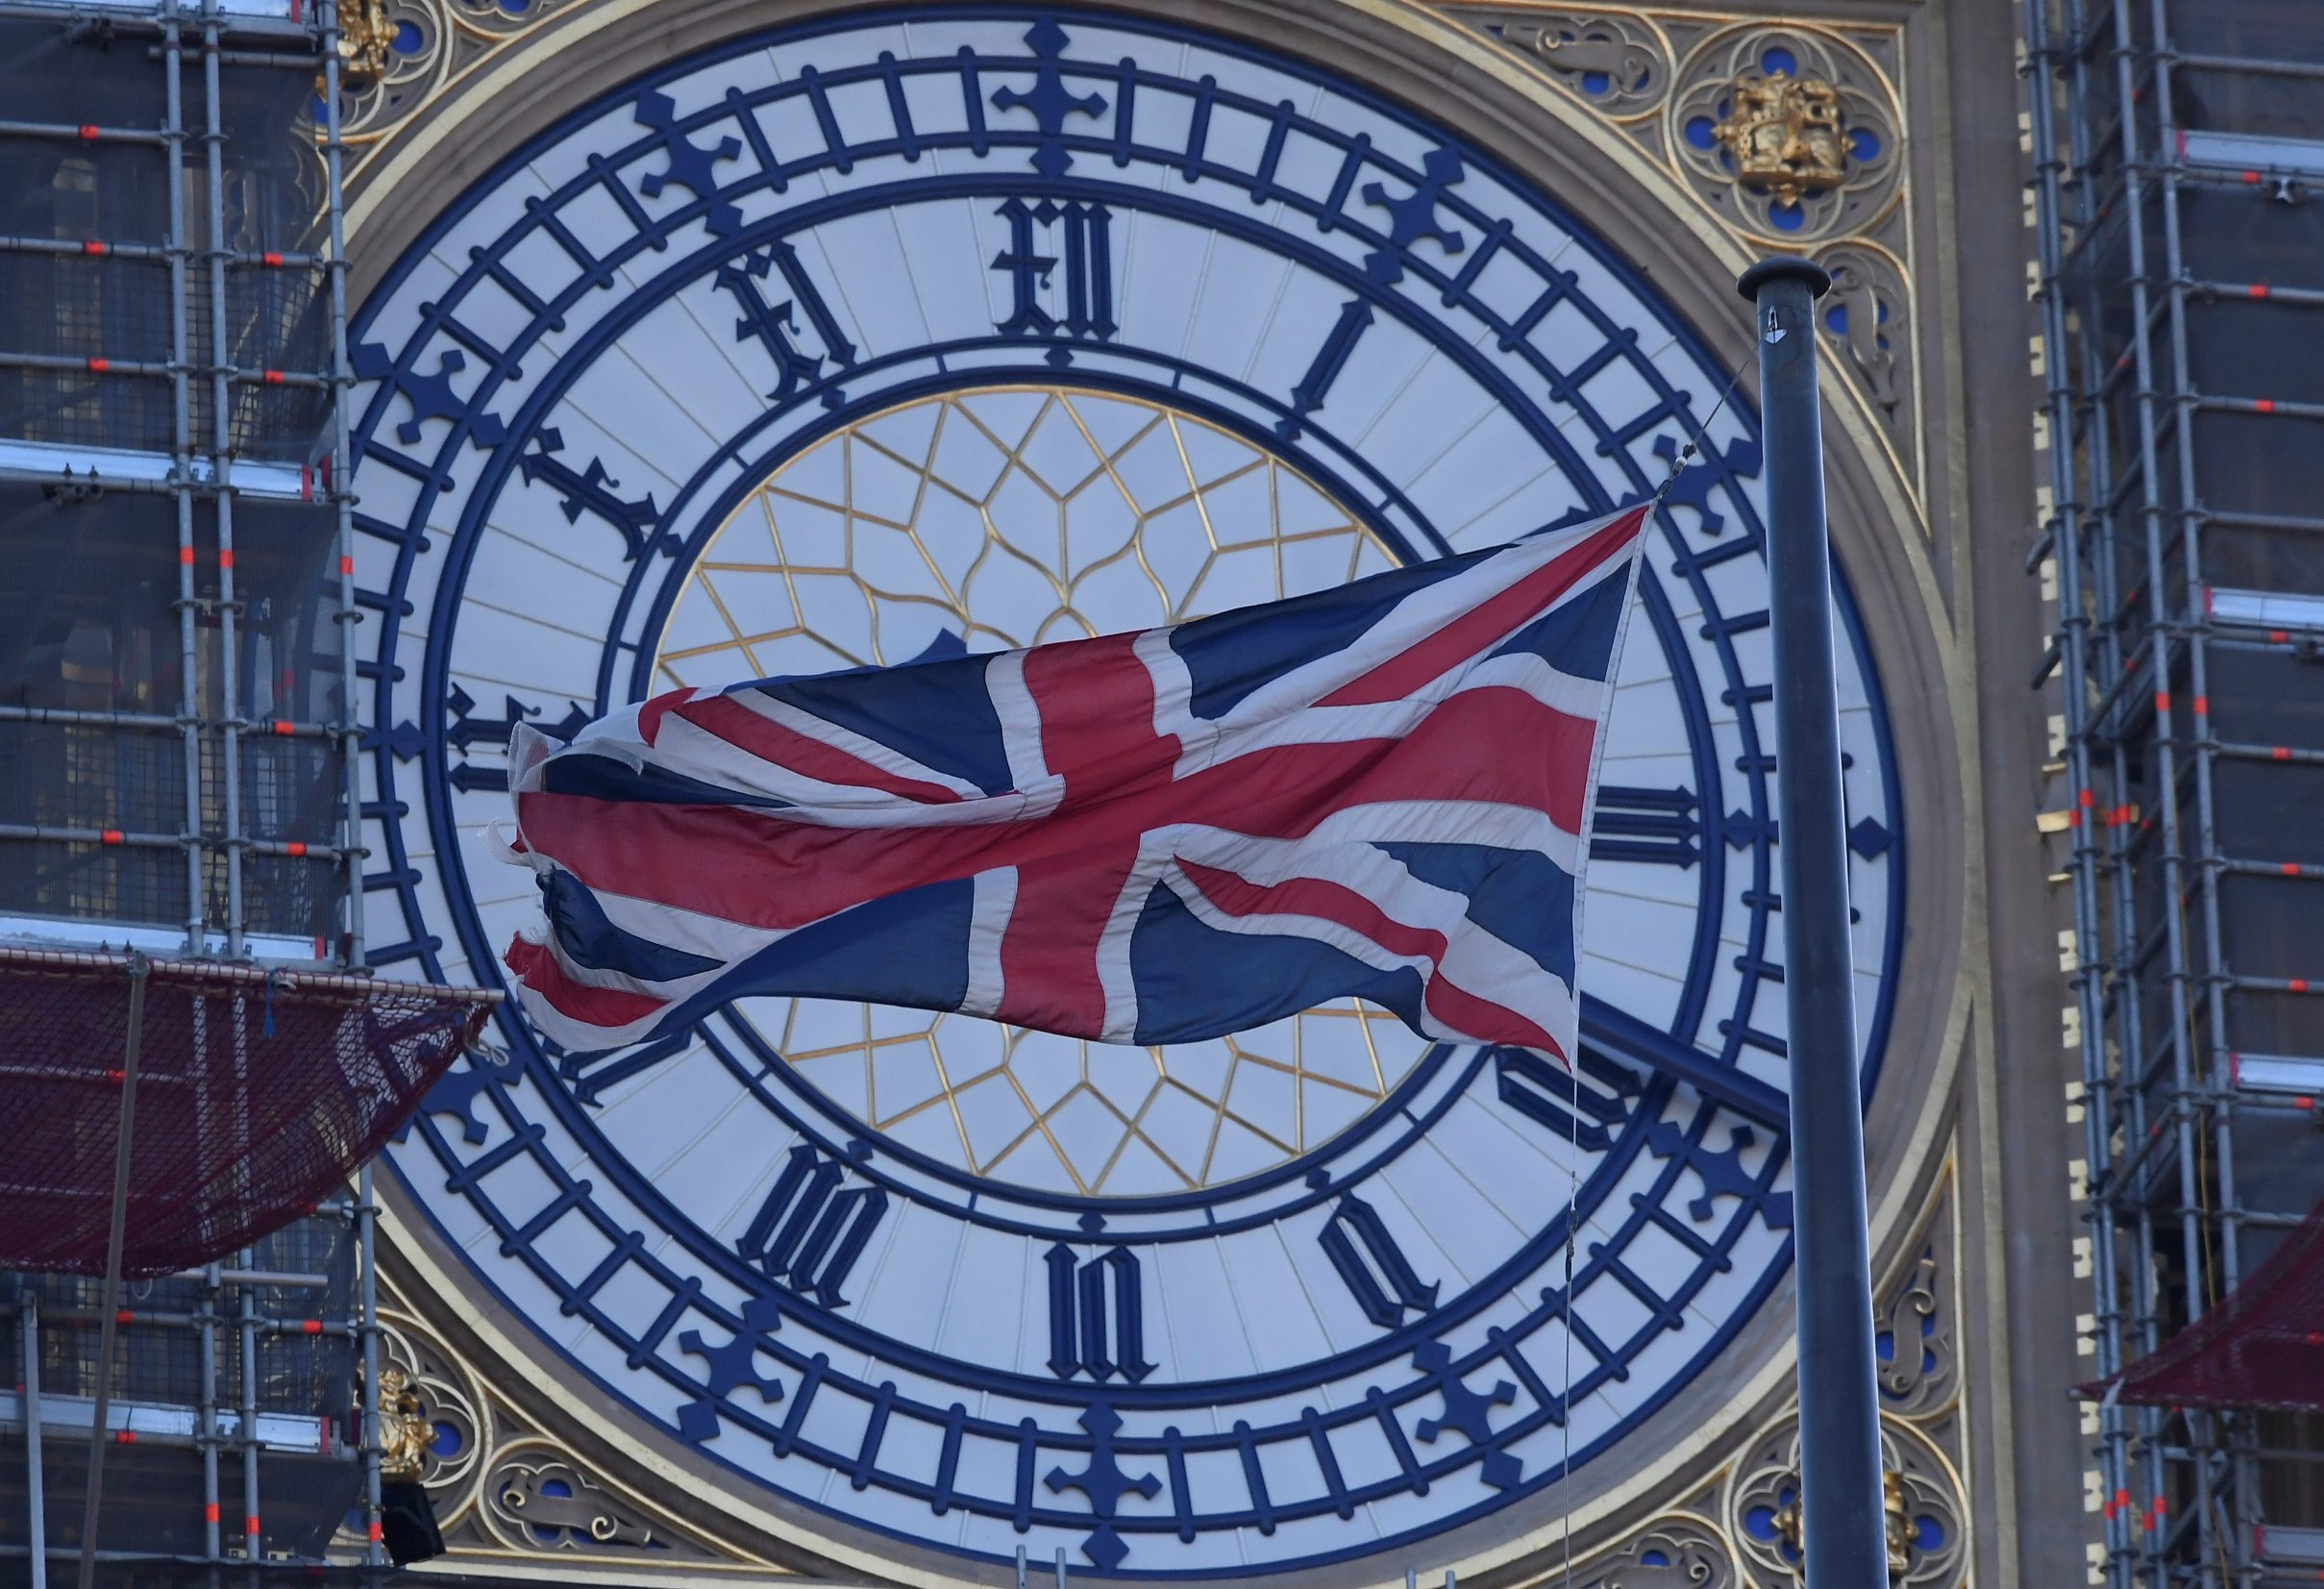 A face of the Big Ben clock tower is seen a day before New Year celebrations, during which the bells of Big Ben will chime at midnight, despite otherwise being silent for the duration of the restoration works currently being undertaken at The Houses of Parliament, London, Britain December 30, 2019. REUTERS/Toby Melville